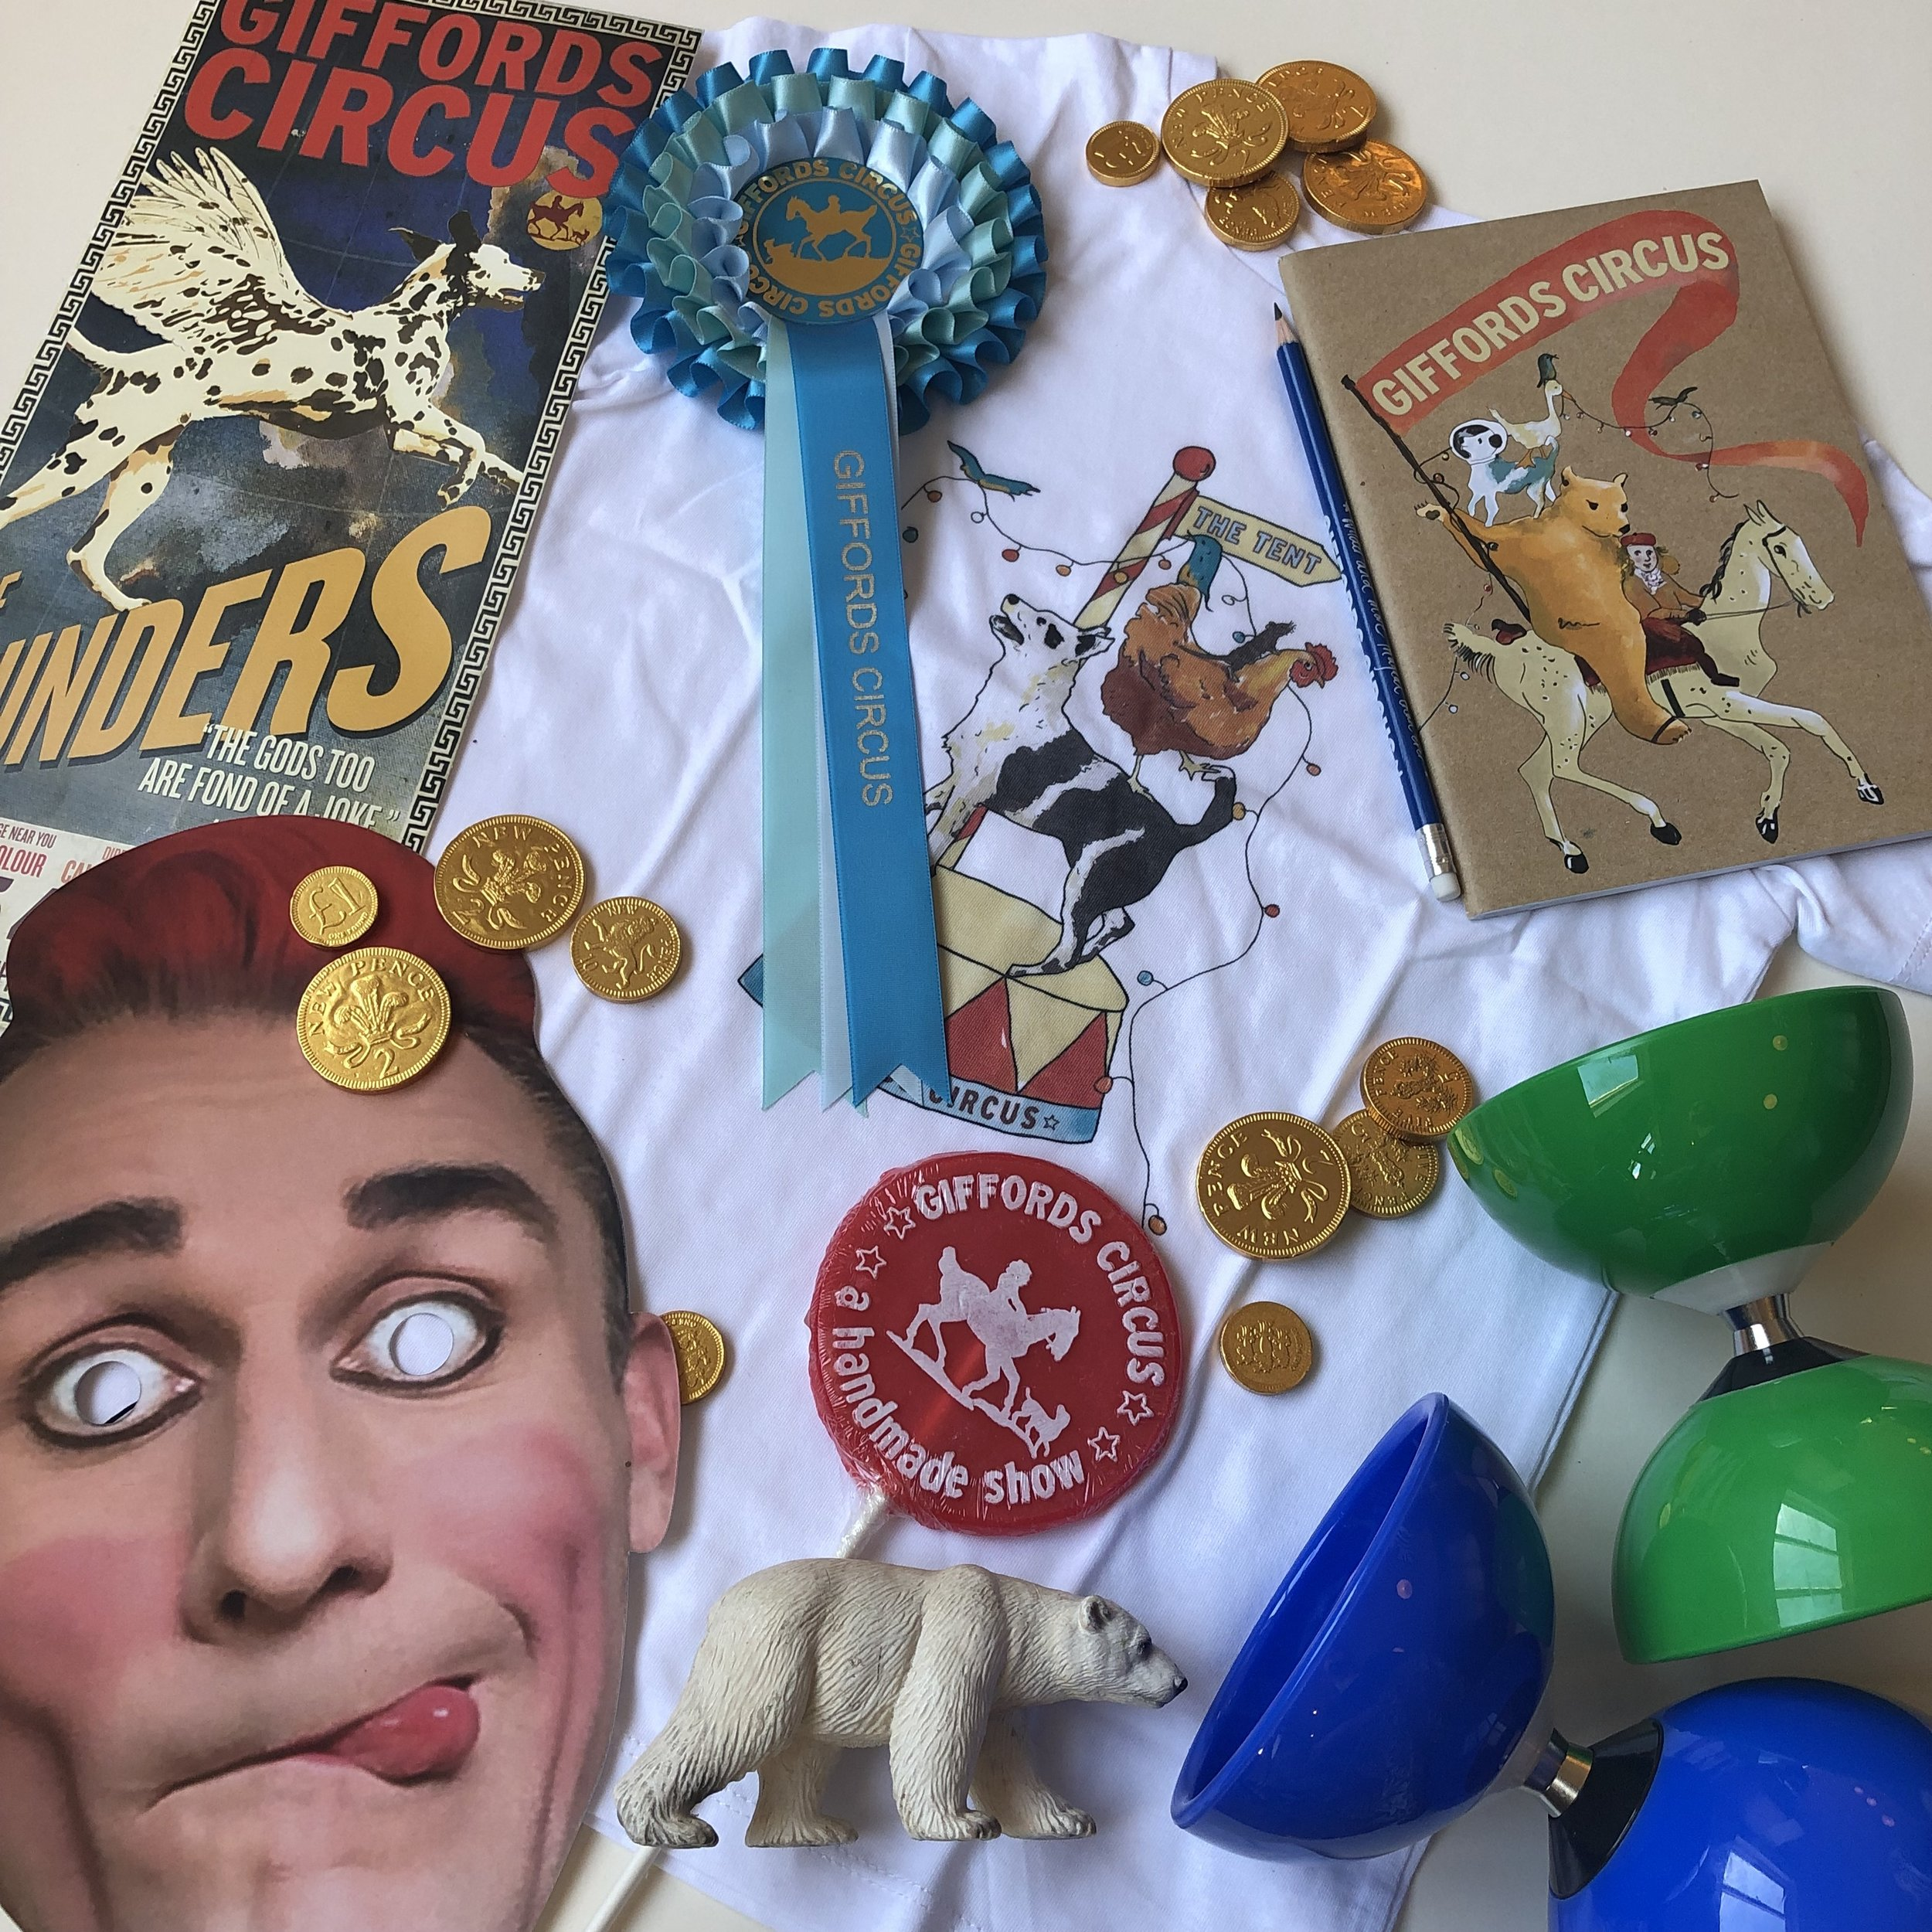 A naughty Tweedy mask, lolly, diabolo, t-shirt, notebook, pencil and posters.